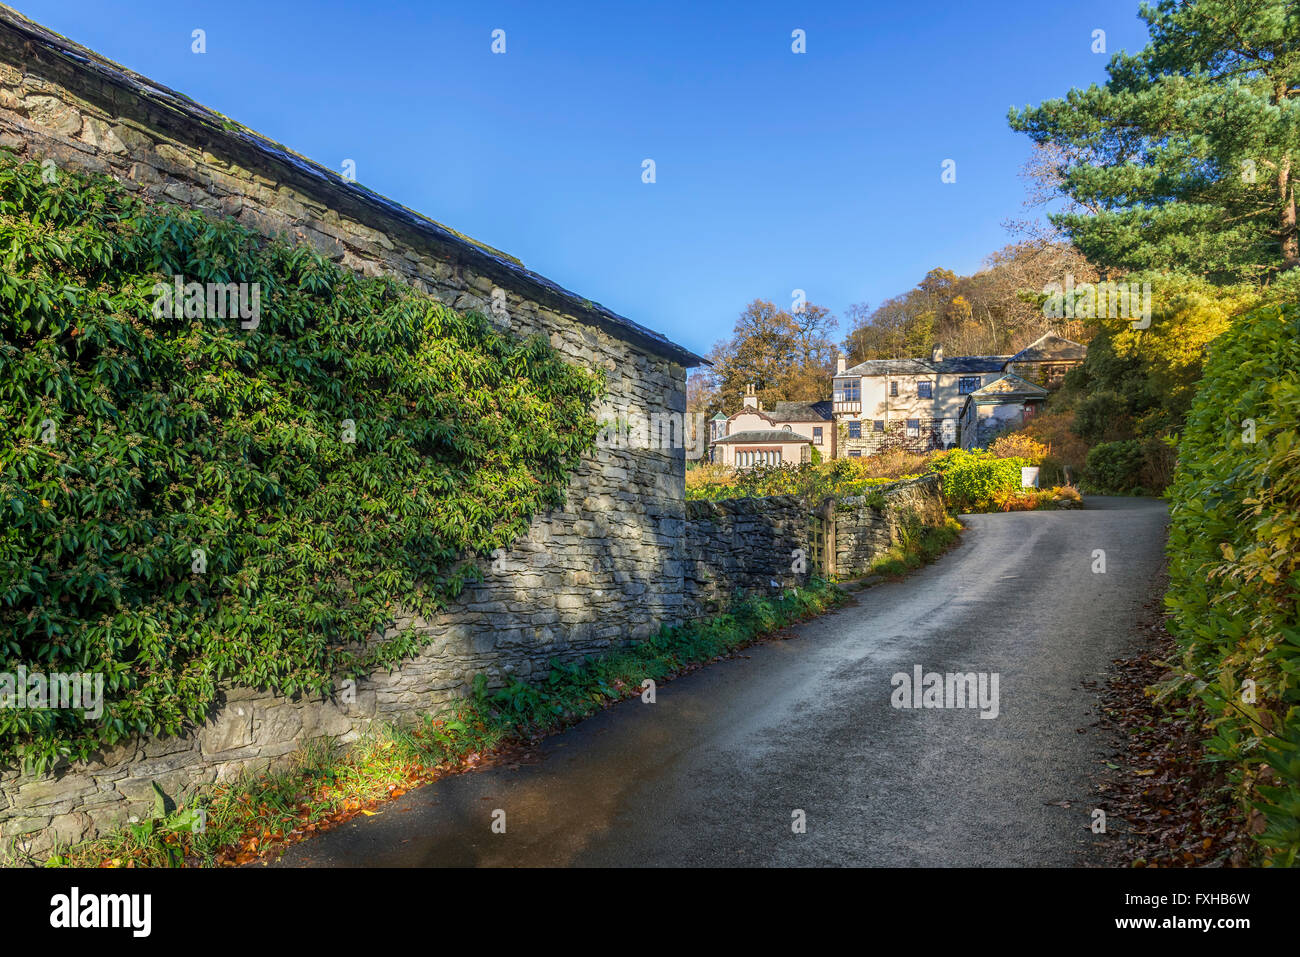 Brantwood House on the side of Lake Coniston in the lake district. Home of John Ruskin. North West England. - Stock Image